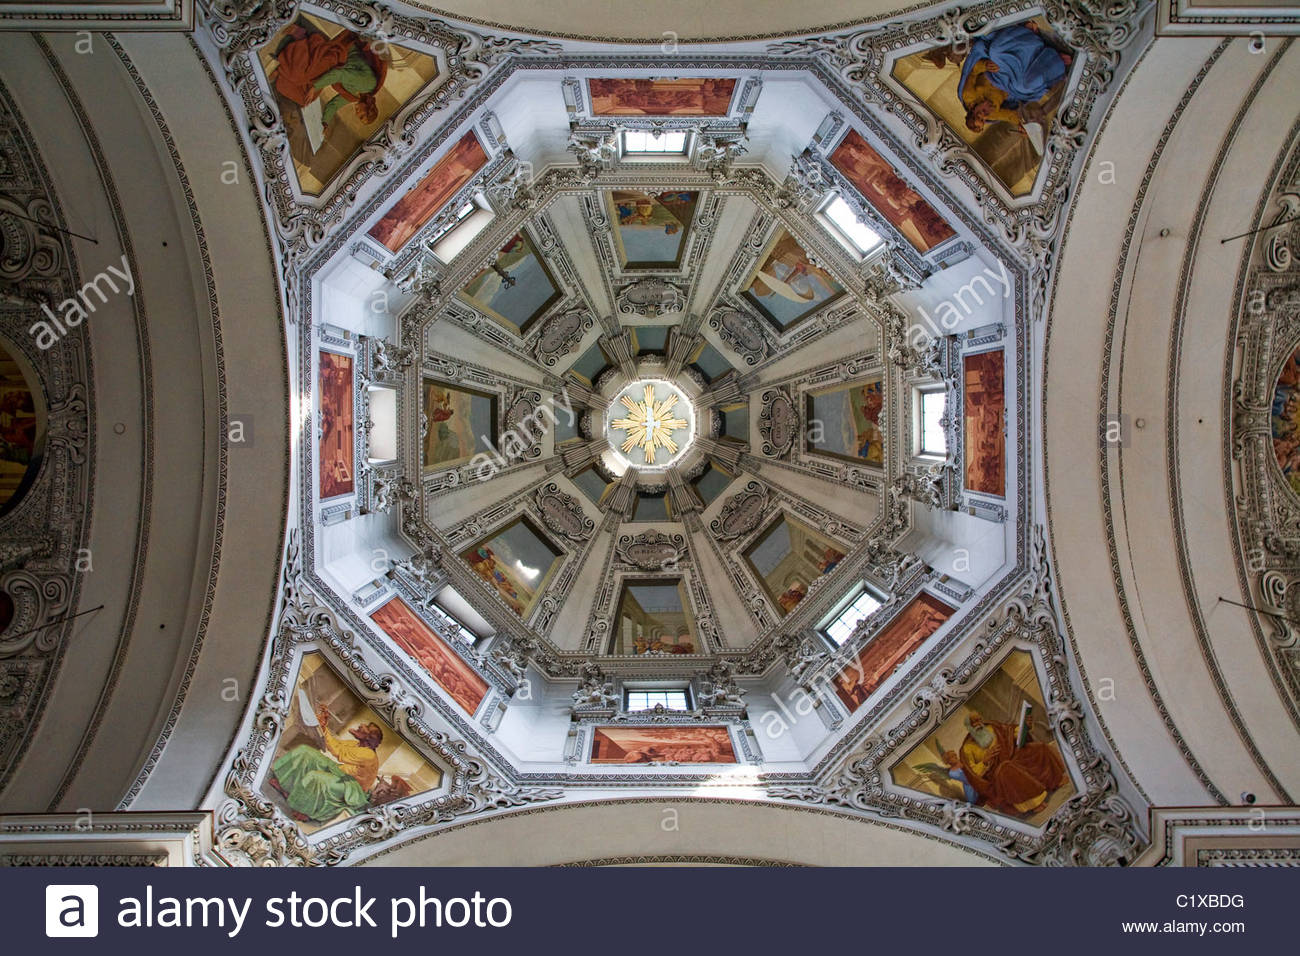 The dome ceiling of the Dom zu Salzburg (Cathedral of Salzburg), Austria. Stock Photo